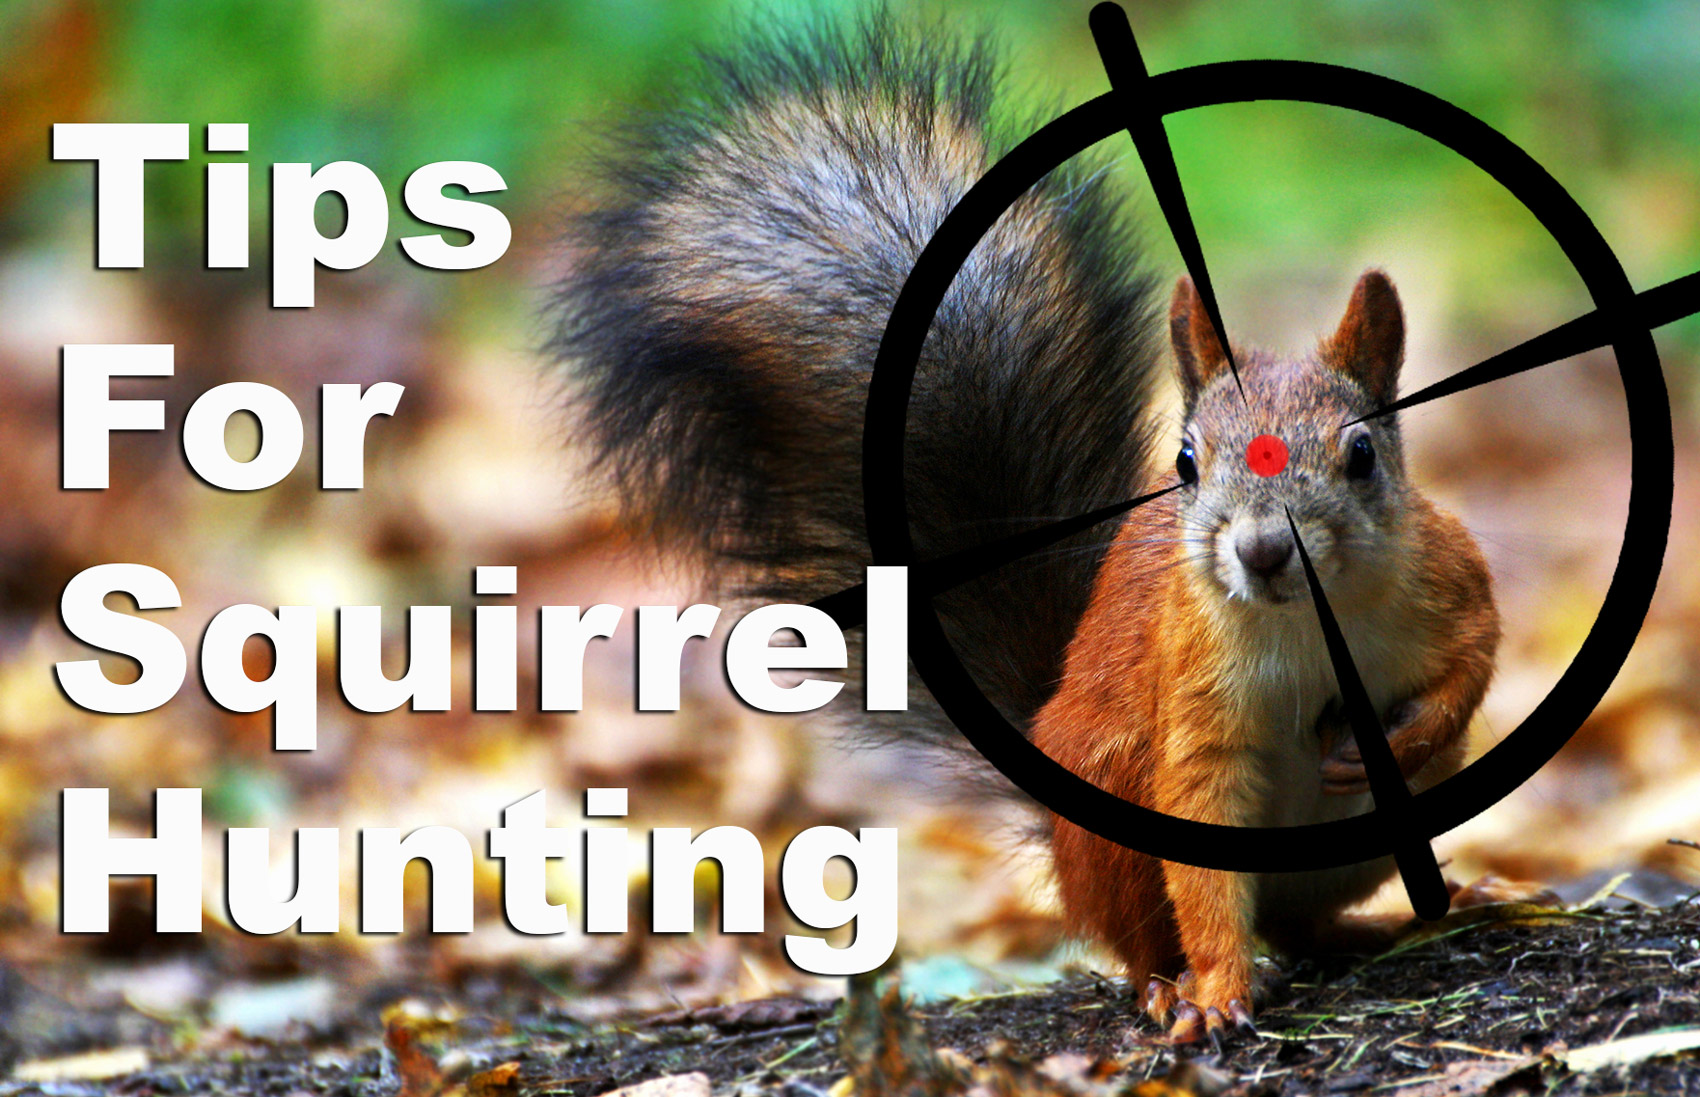 Tips for squirrel hunting